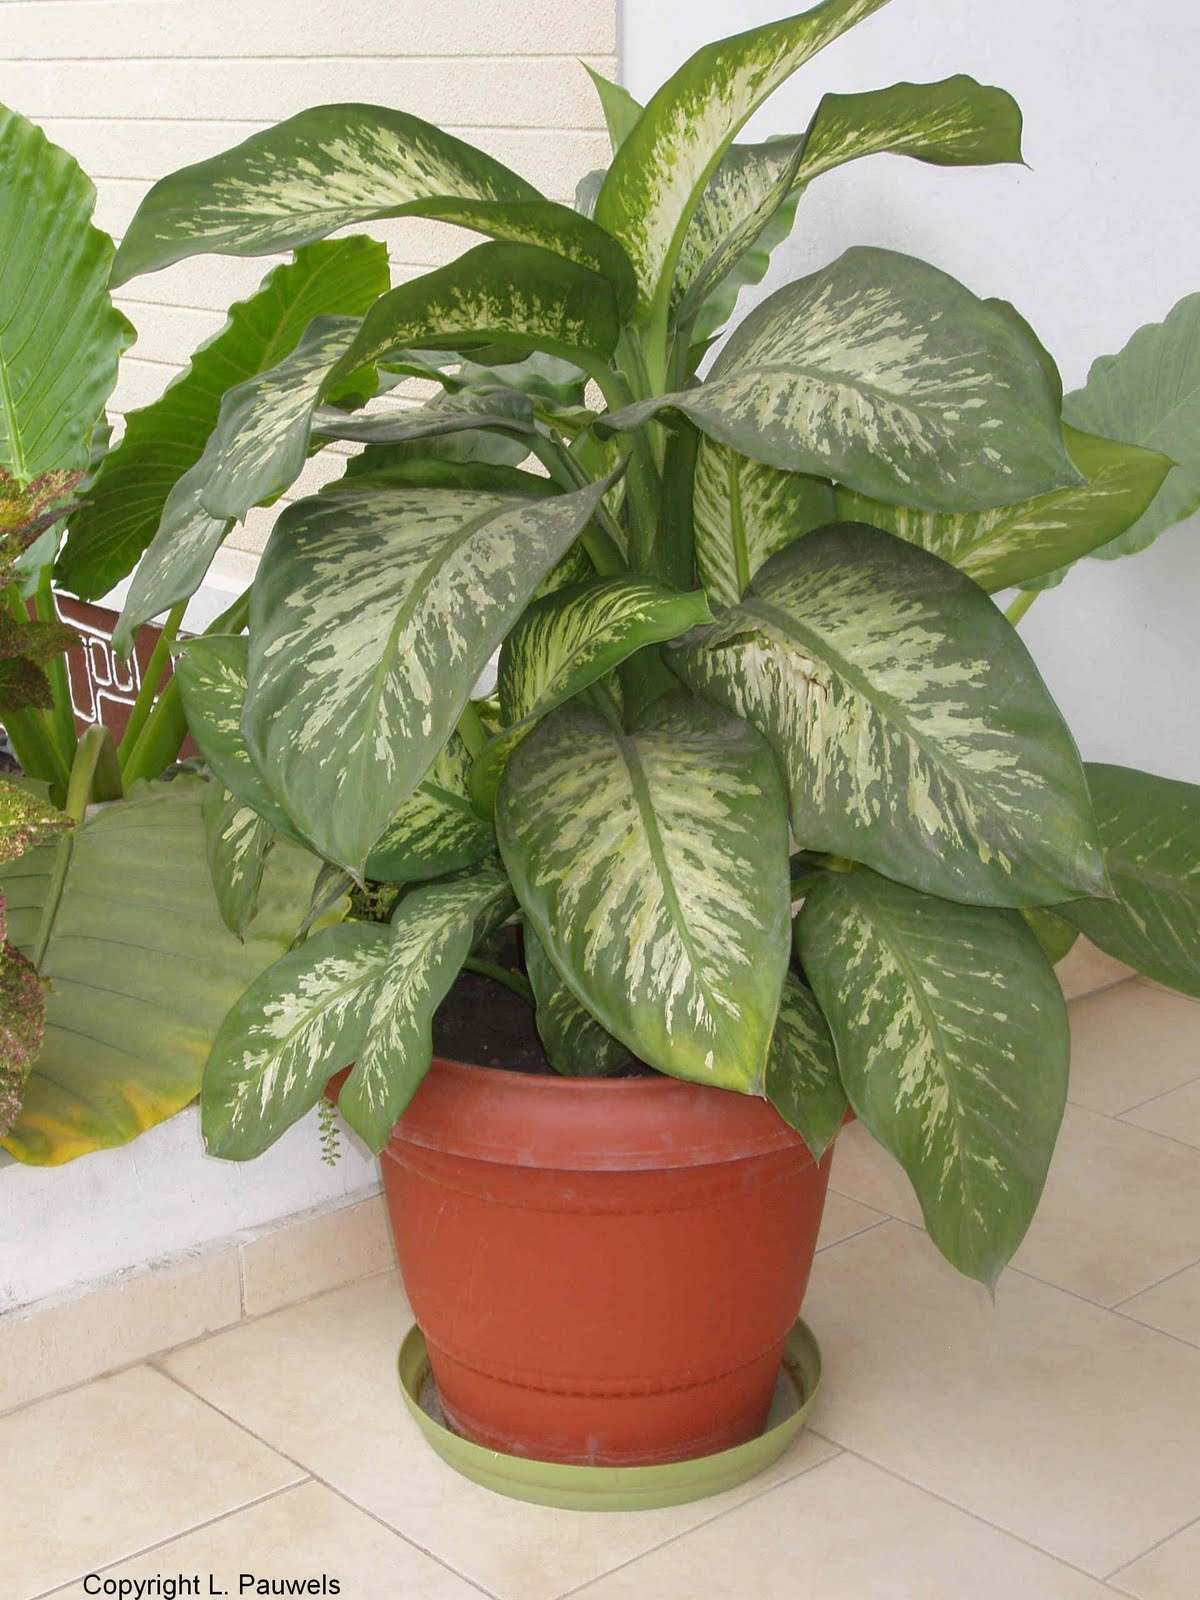 Attractive house plants 2015 large house plants - House plants names and pictures ...